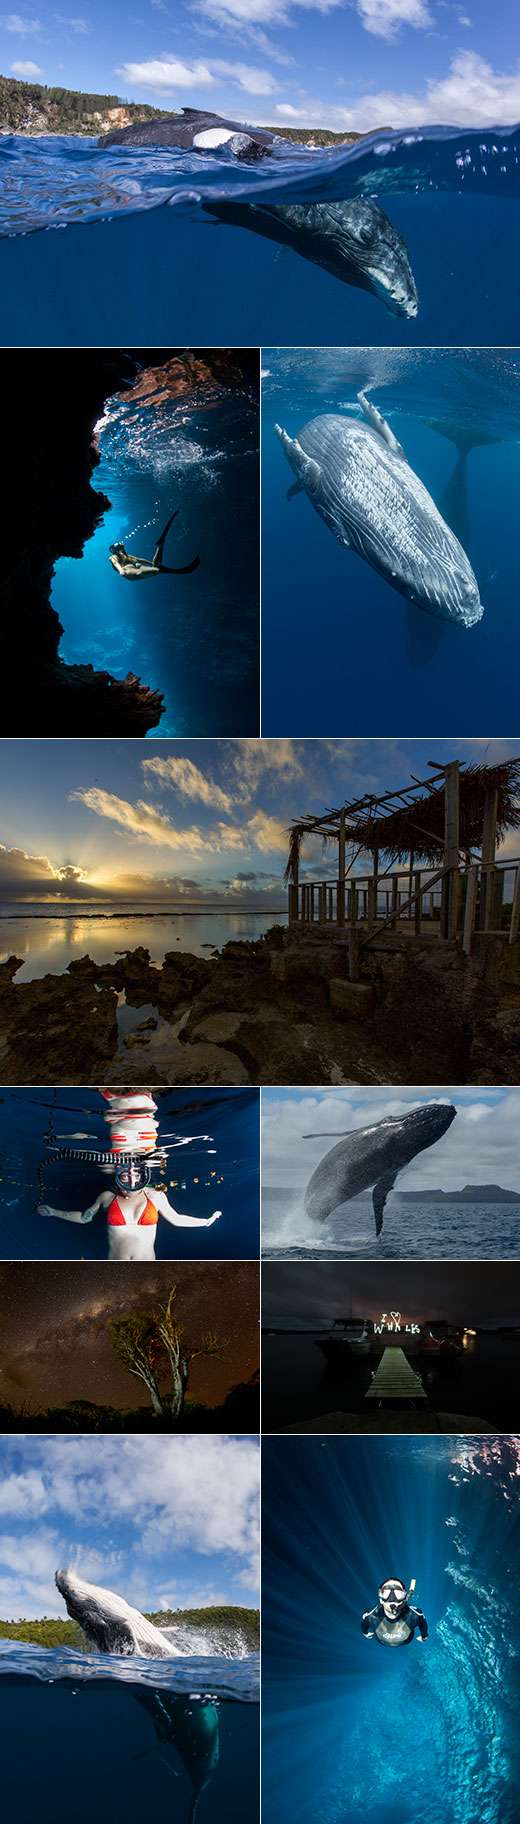 Tonga 2014 season still paradise collage swimming with humpback whales  and through caves